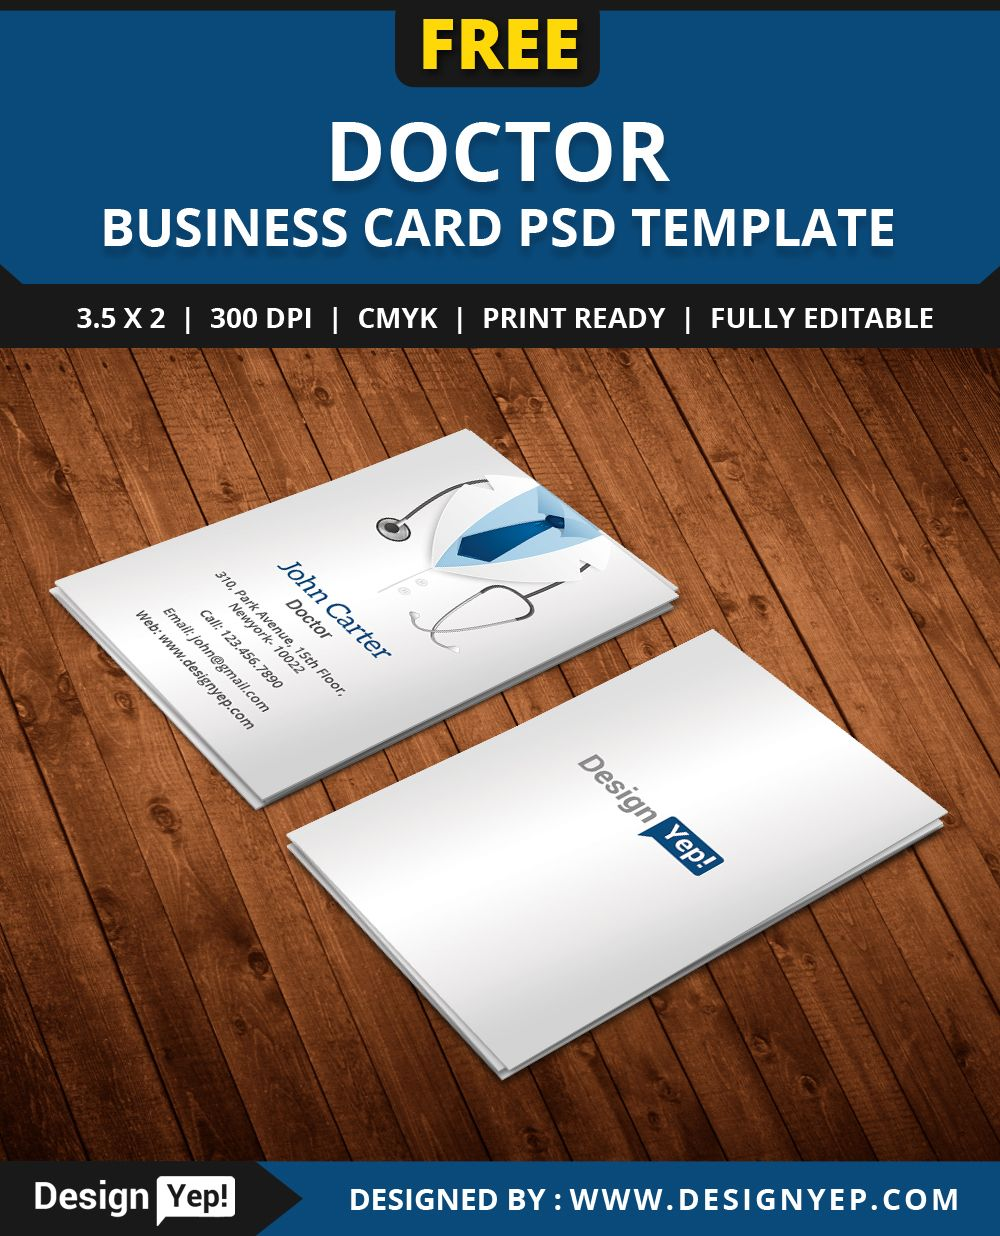 Free Doctor Business Card Template PSD   Free Business Card     Free Doctor Business Card Template PSD